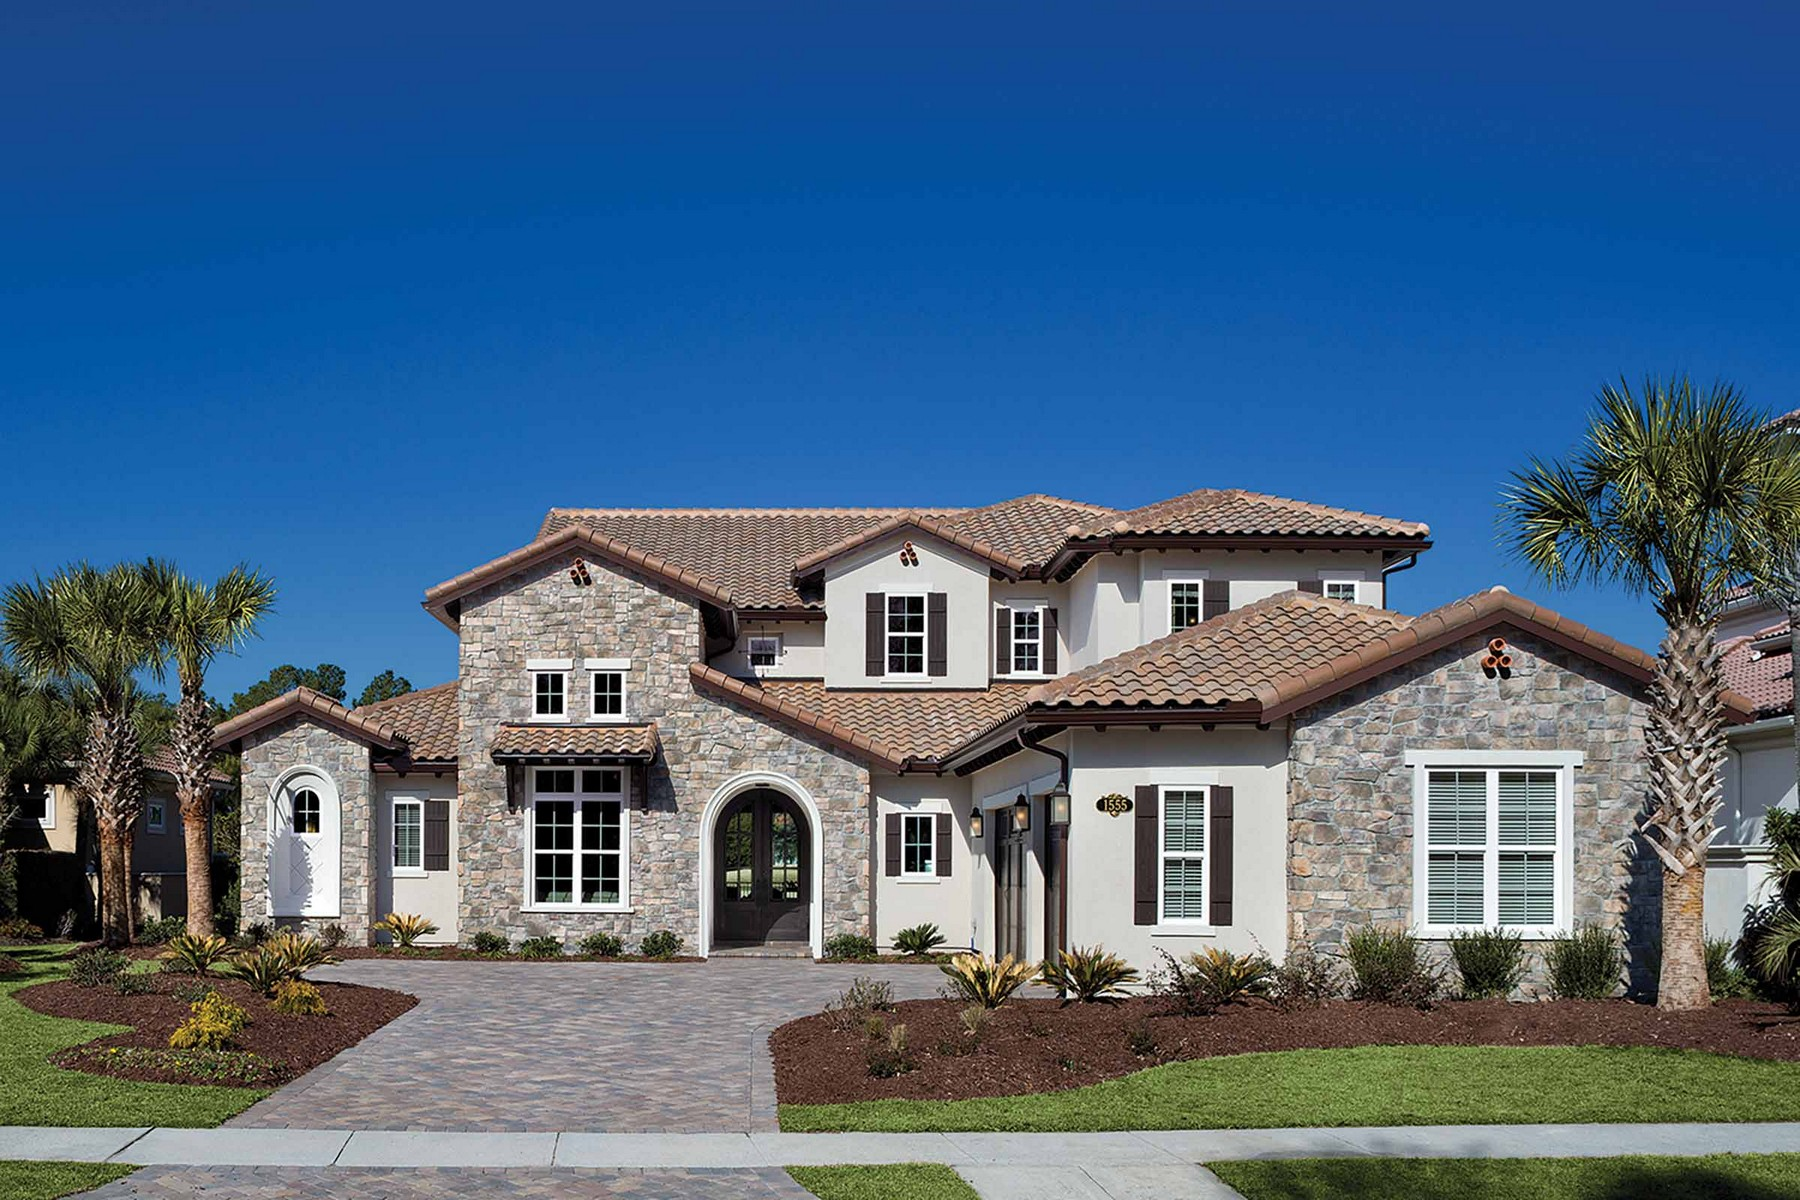 Maison unifamiliale pour l Vente à To Be Constructed Montalcino by Arthur Rutenberg Homes 1645 Riomar Cove Lane Vero Beach, Florida 32963 États-Unis